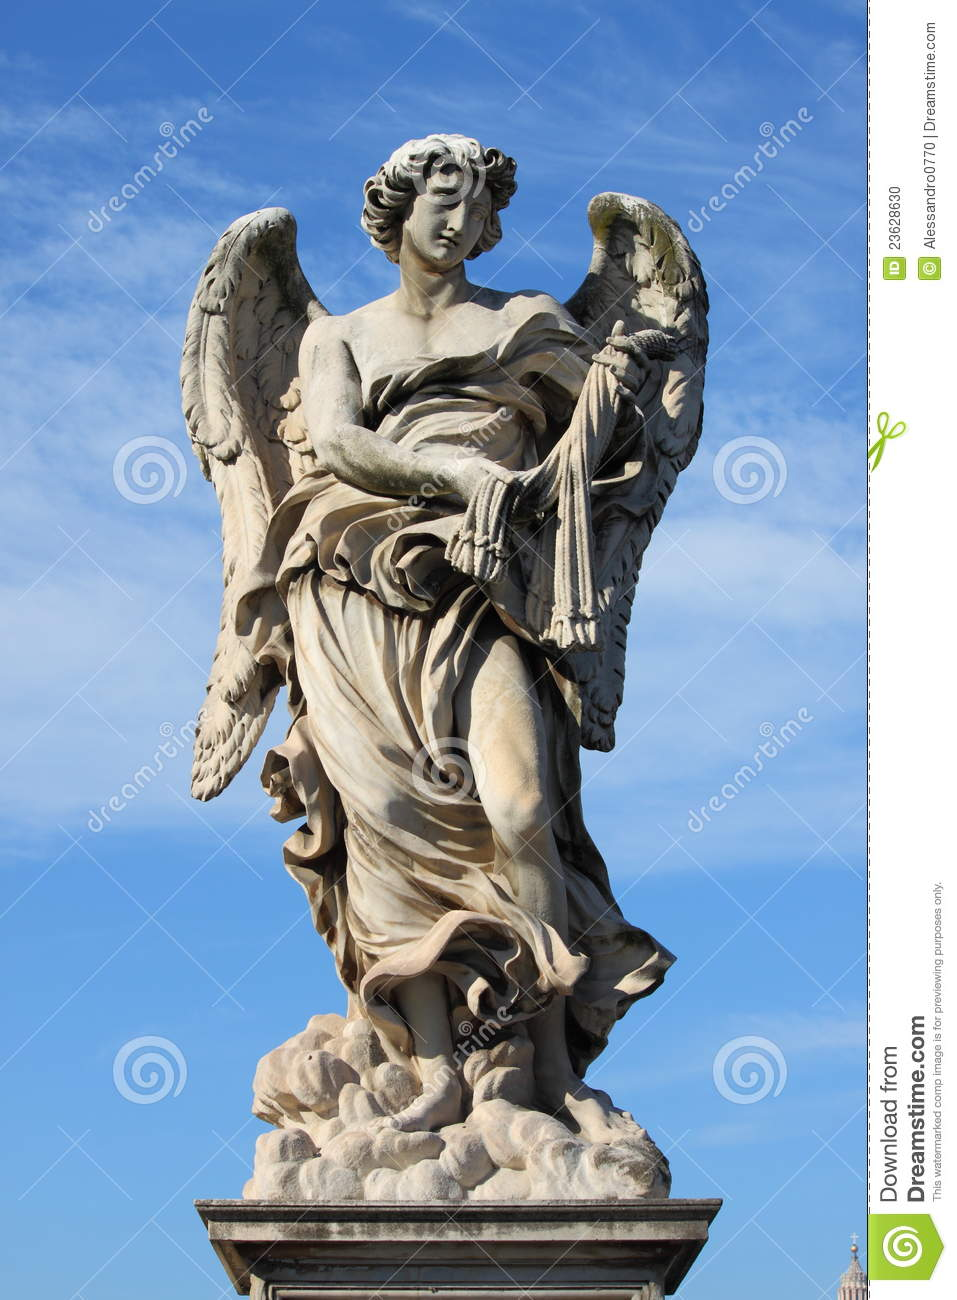 Angel statue stock photo. Image of ancient, historic ...